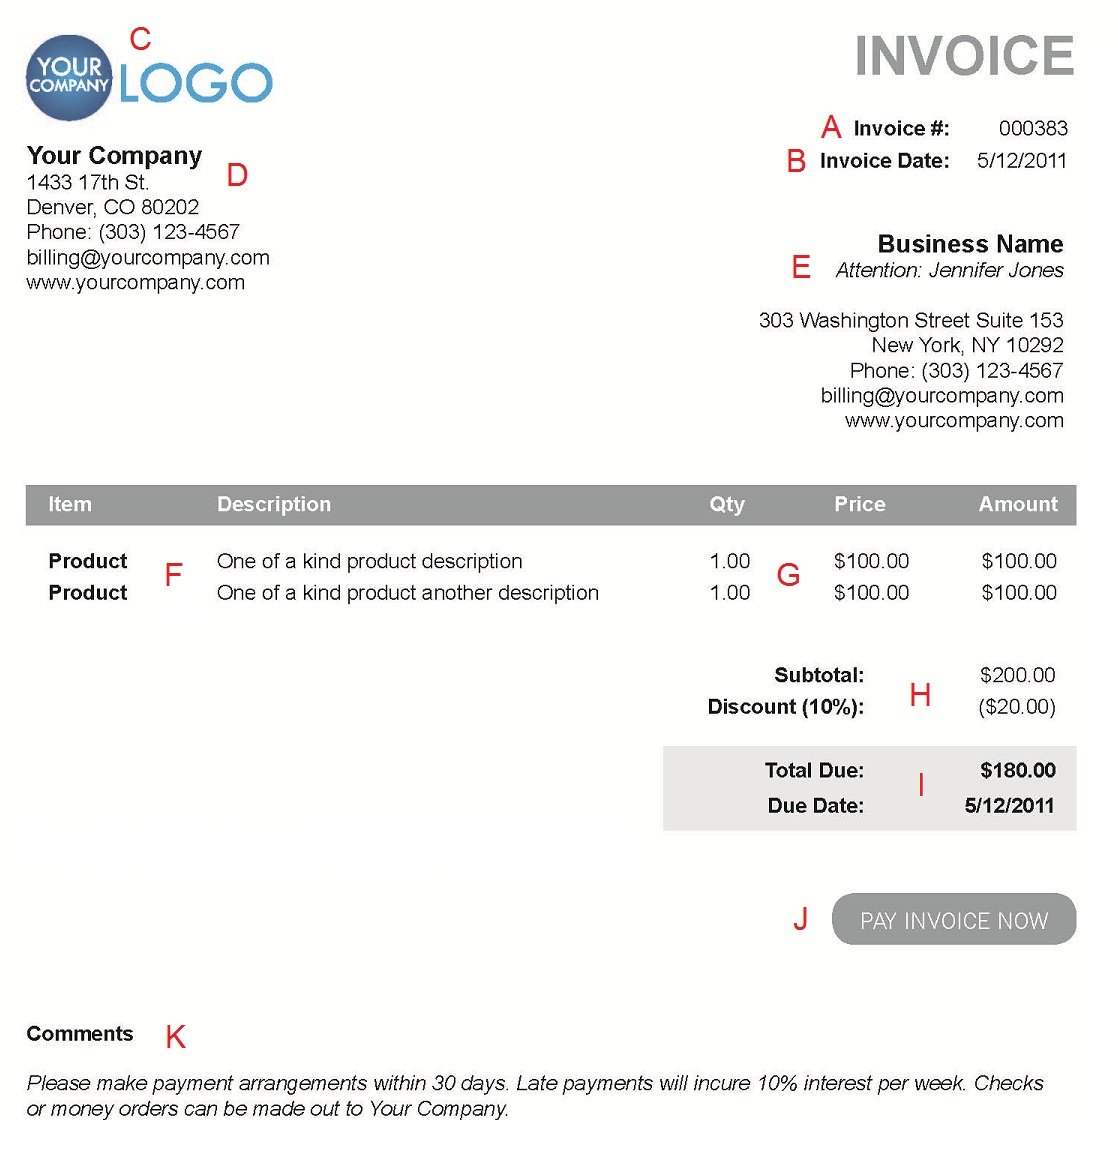 Hucareus  Marvellous The  Different Sections Of An Electronic Payment Invoice With Exciting A  With Nice Invoicing Definition Also Aynax Invoice Login In Addition Microsoft Office Invoice Template And Construction Invoice As Well As Zoho Invoices Additionally Amazon Invoice From Paysimplecom With Hucareus  Exciting The  Different Sections Of An Electronic Payment Invoice With Nice A  And Marvellous Invoicing Definition Also Aynax Invoice Login In Addition Microsoft Office Invoice Template From Paysimplecom